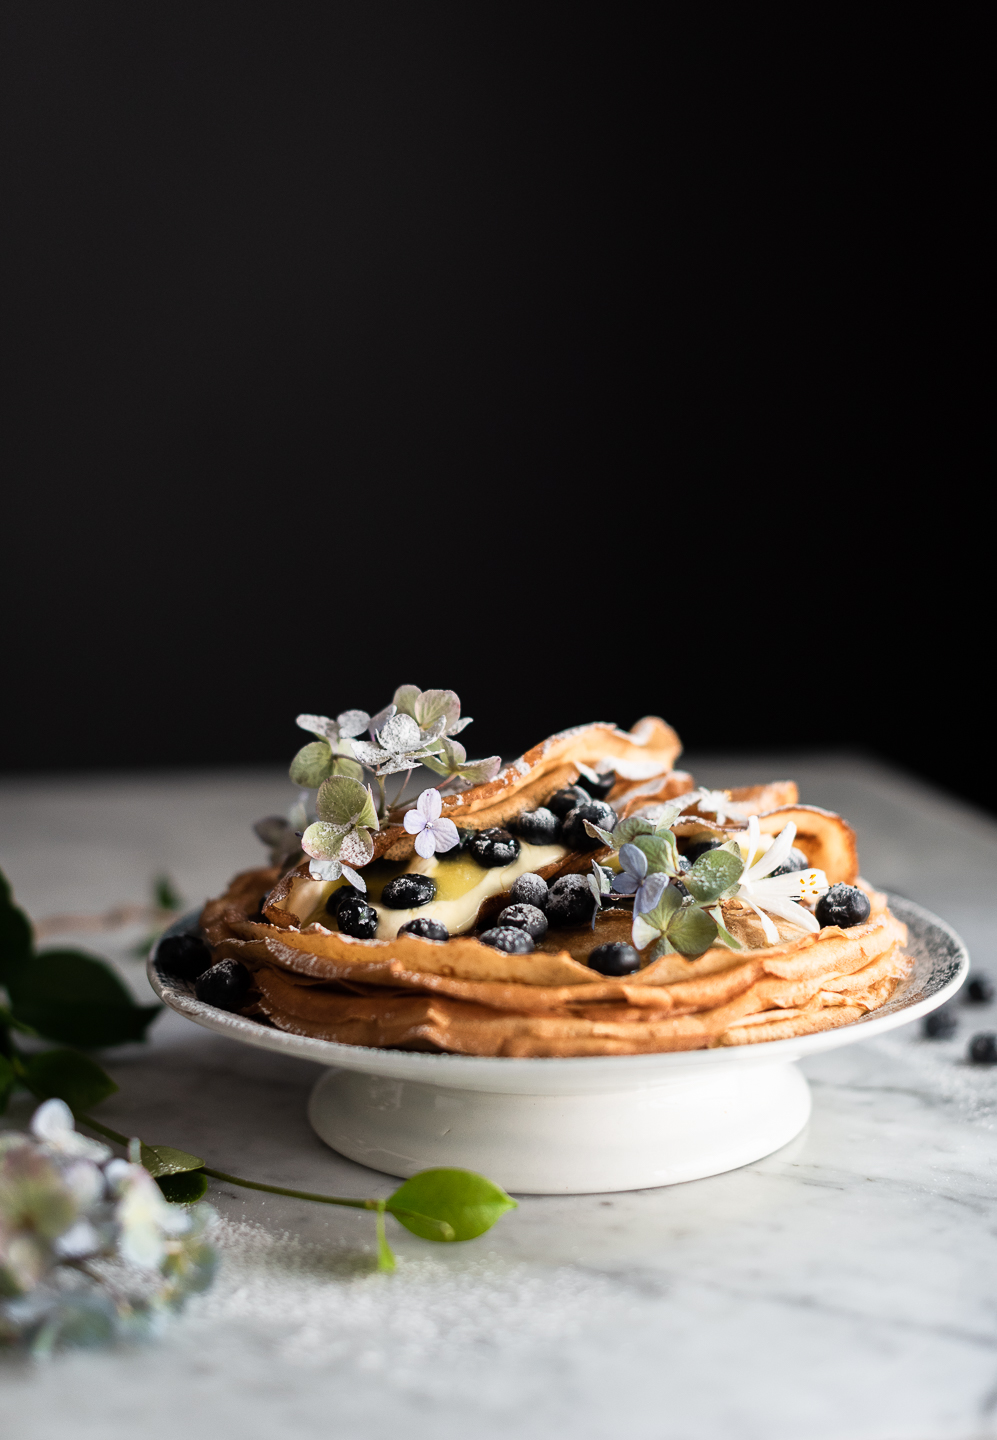 Brown butter wholemeal pancakes